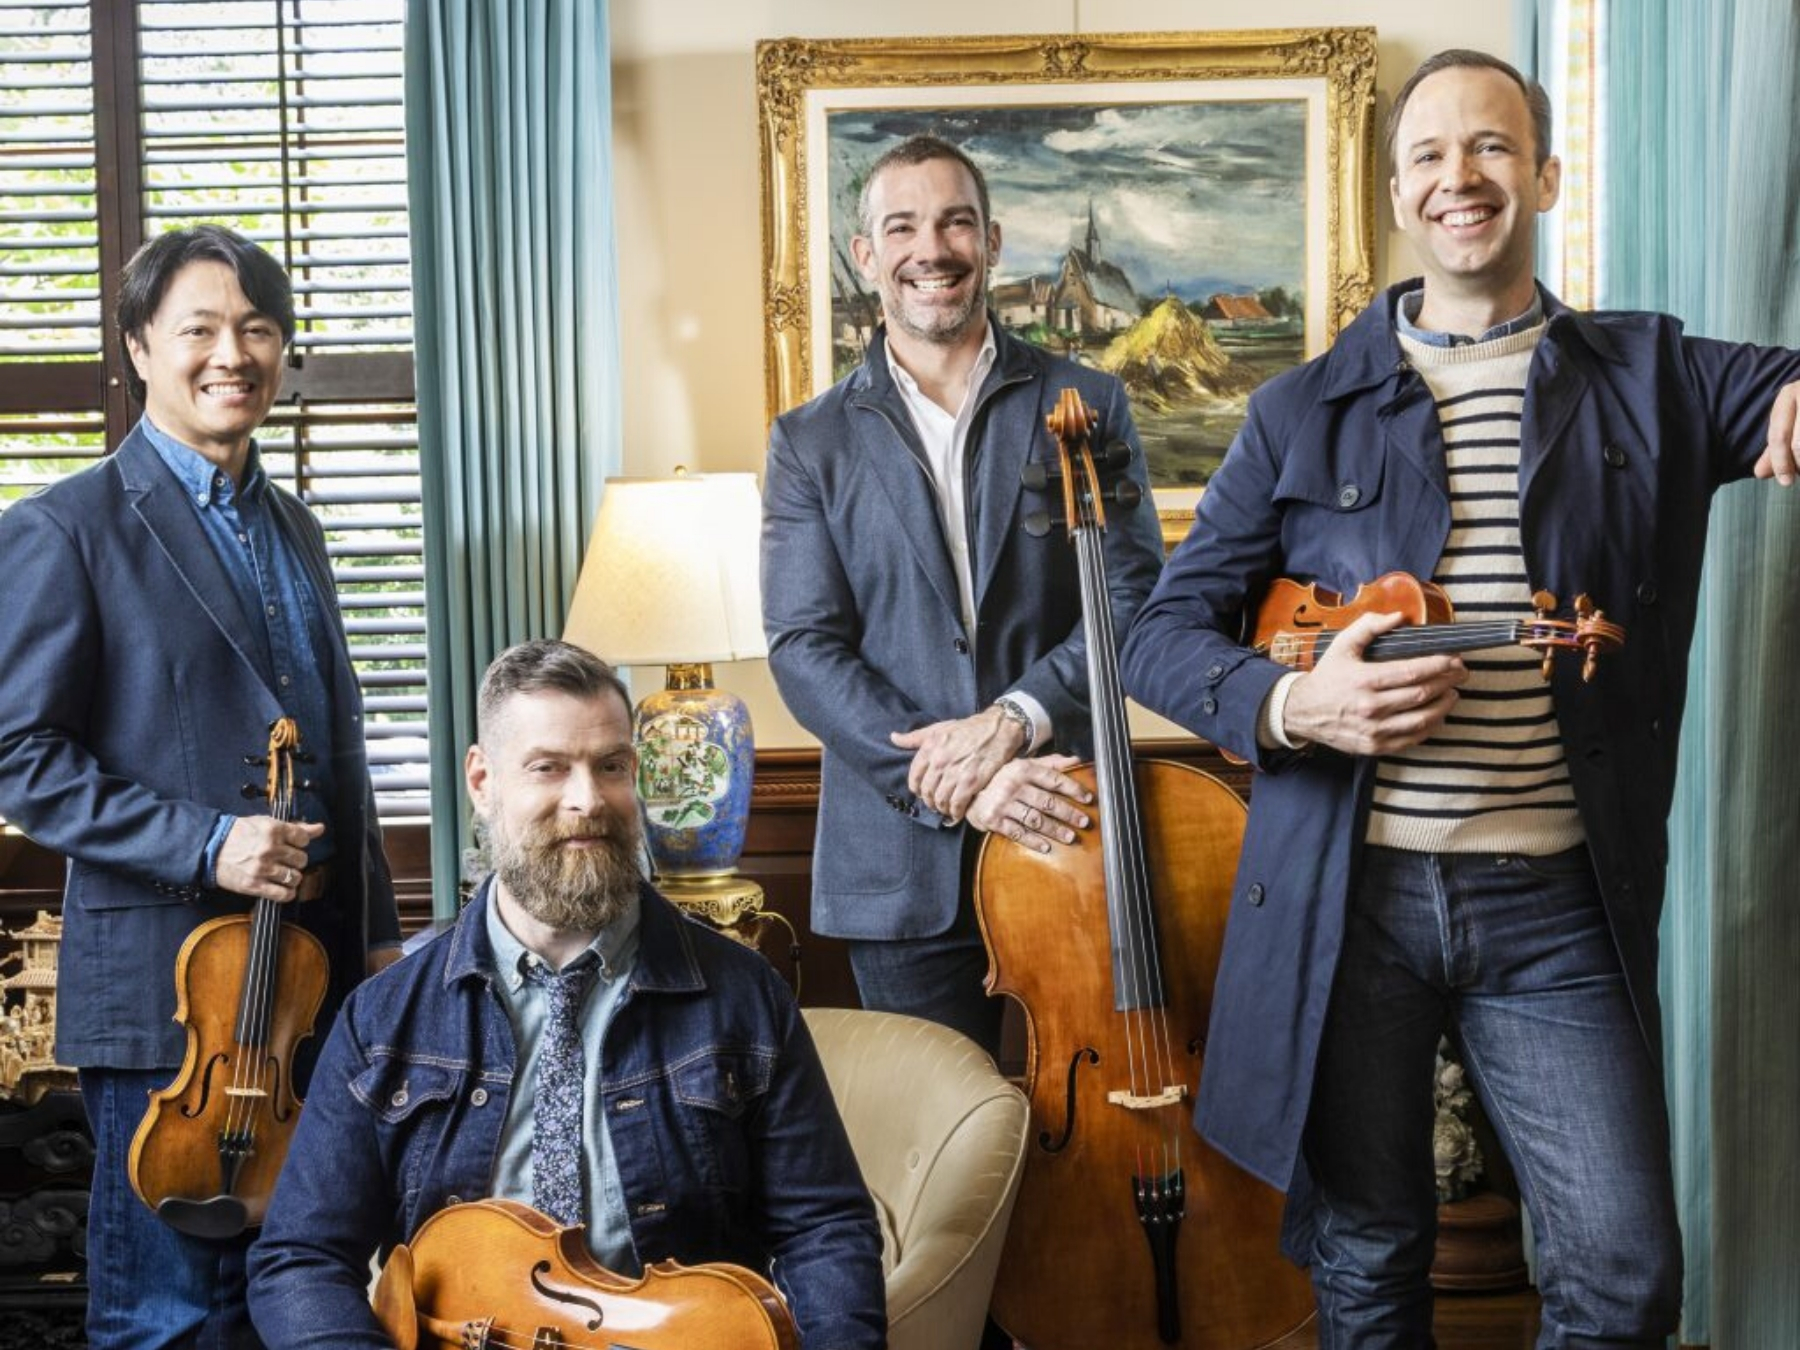 chamber musicians in denim outfits